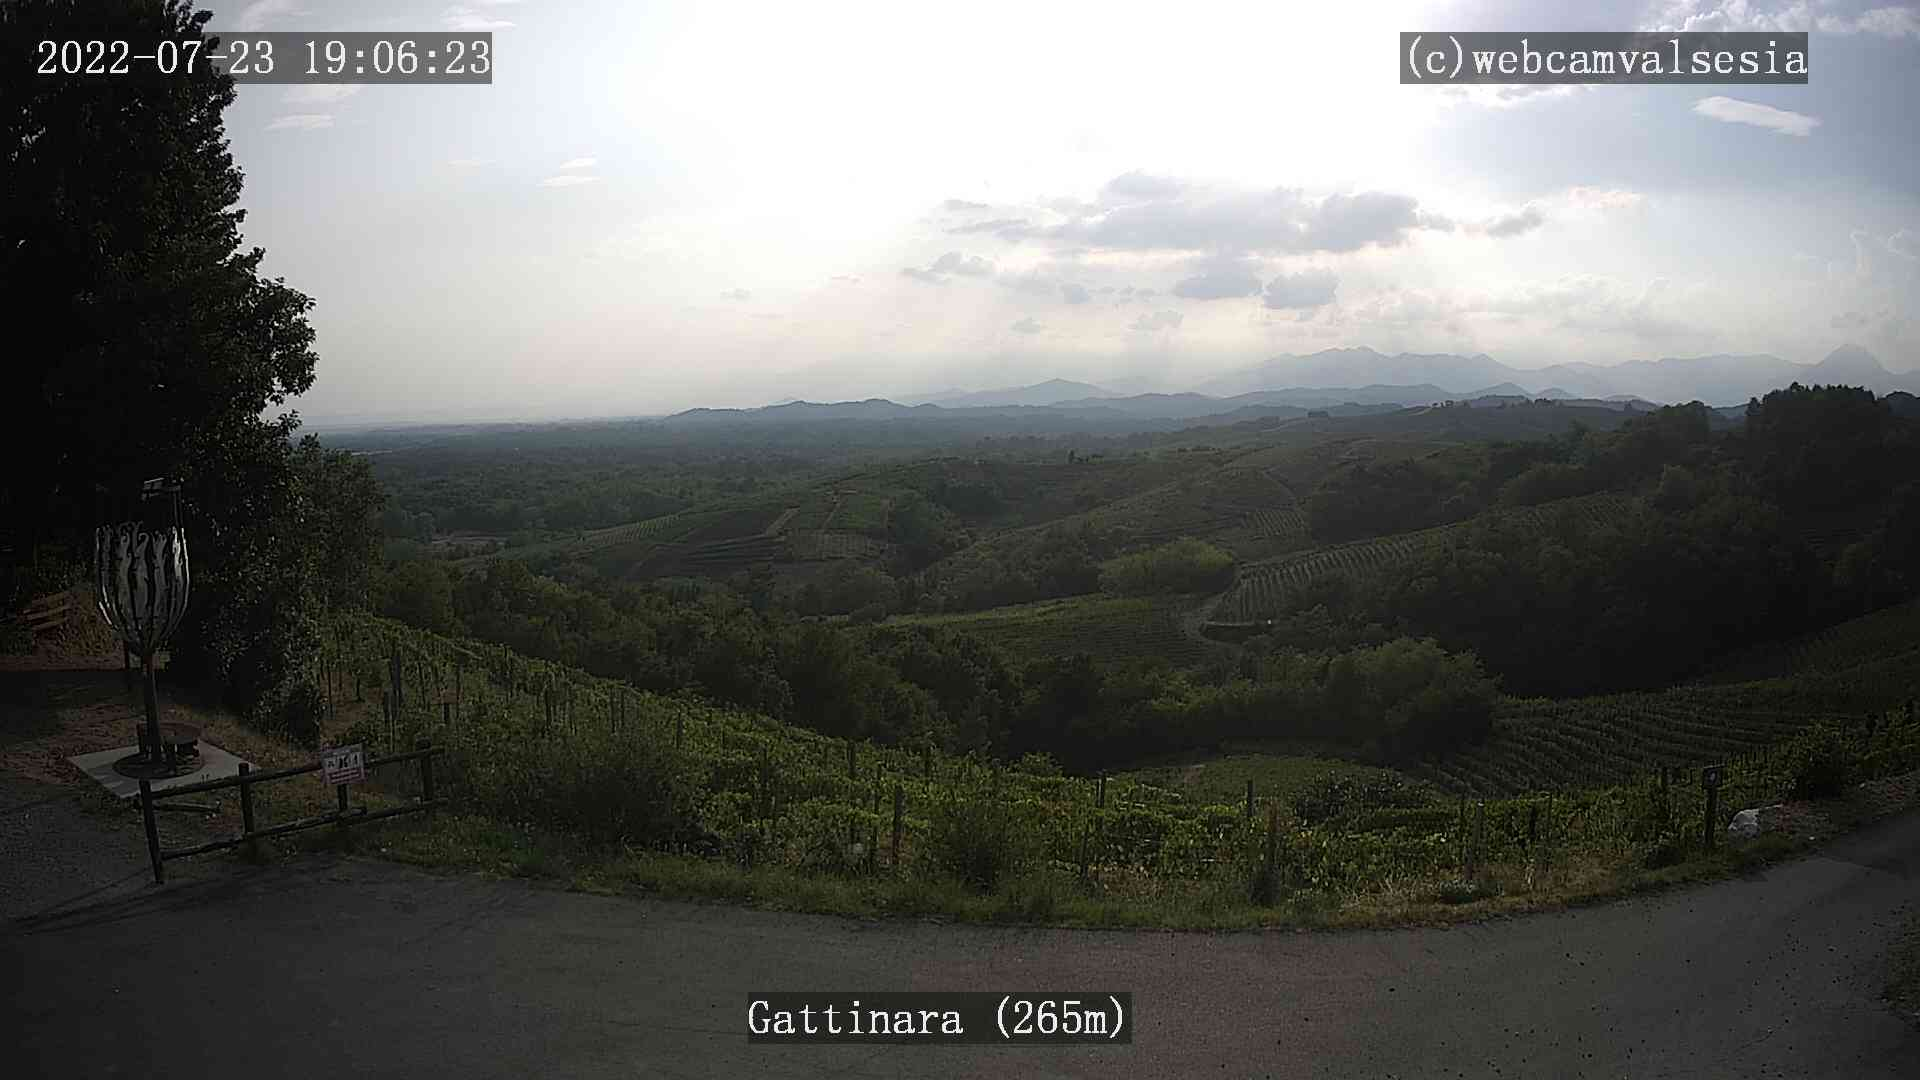 webcam valsesia Gattinara 2